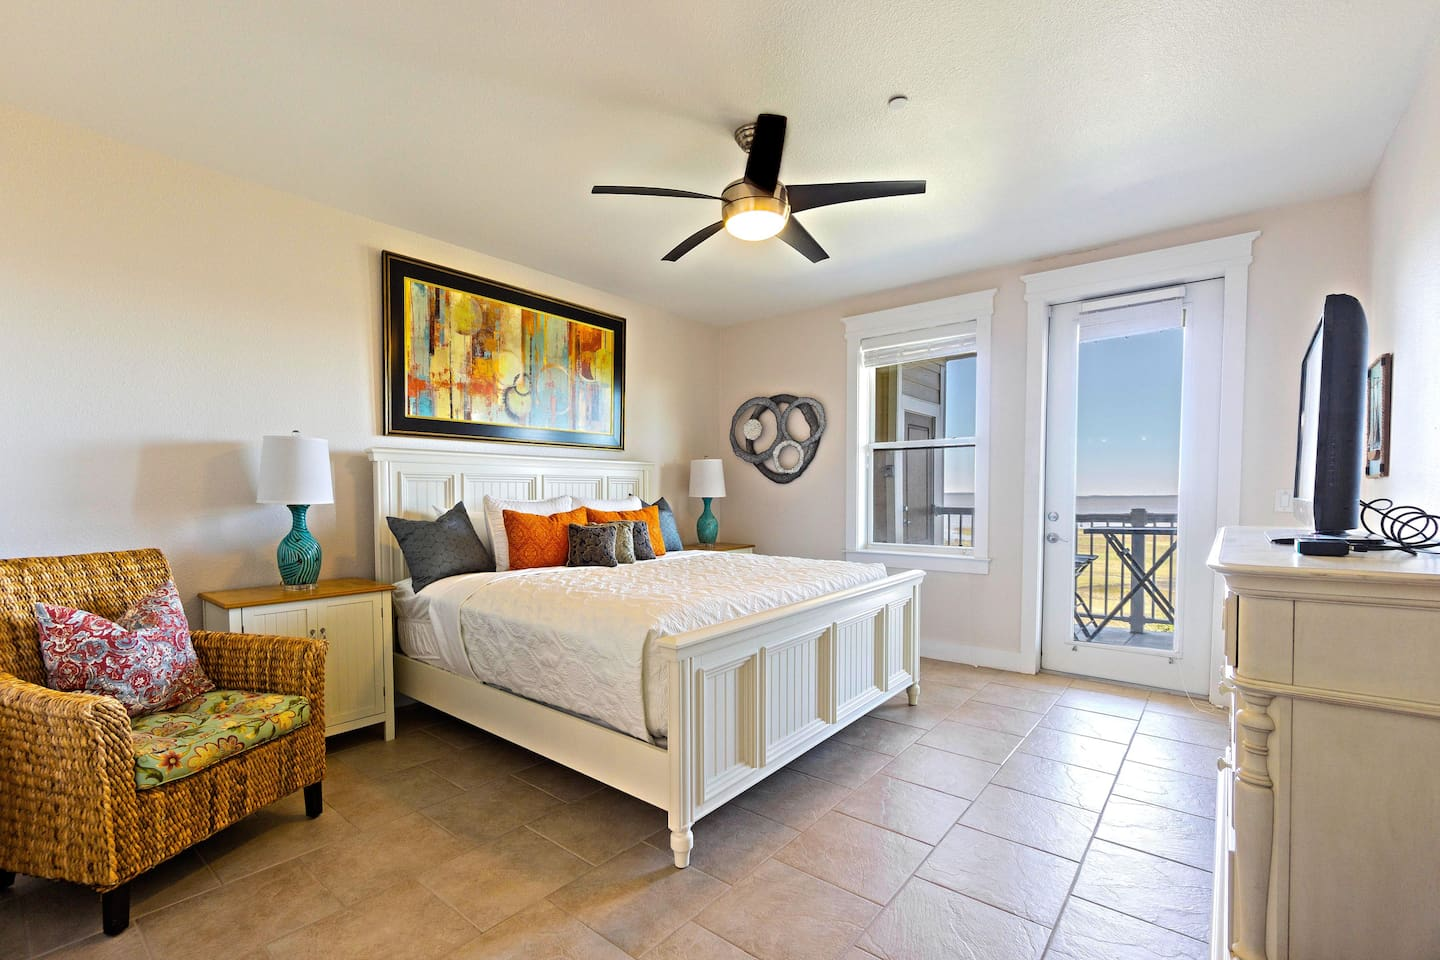 Comfortable king bed in master bedroom